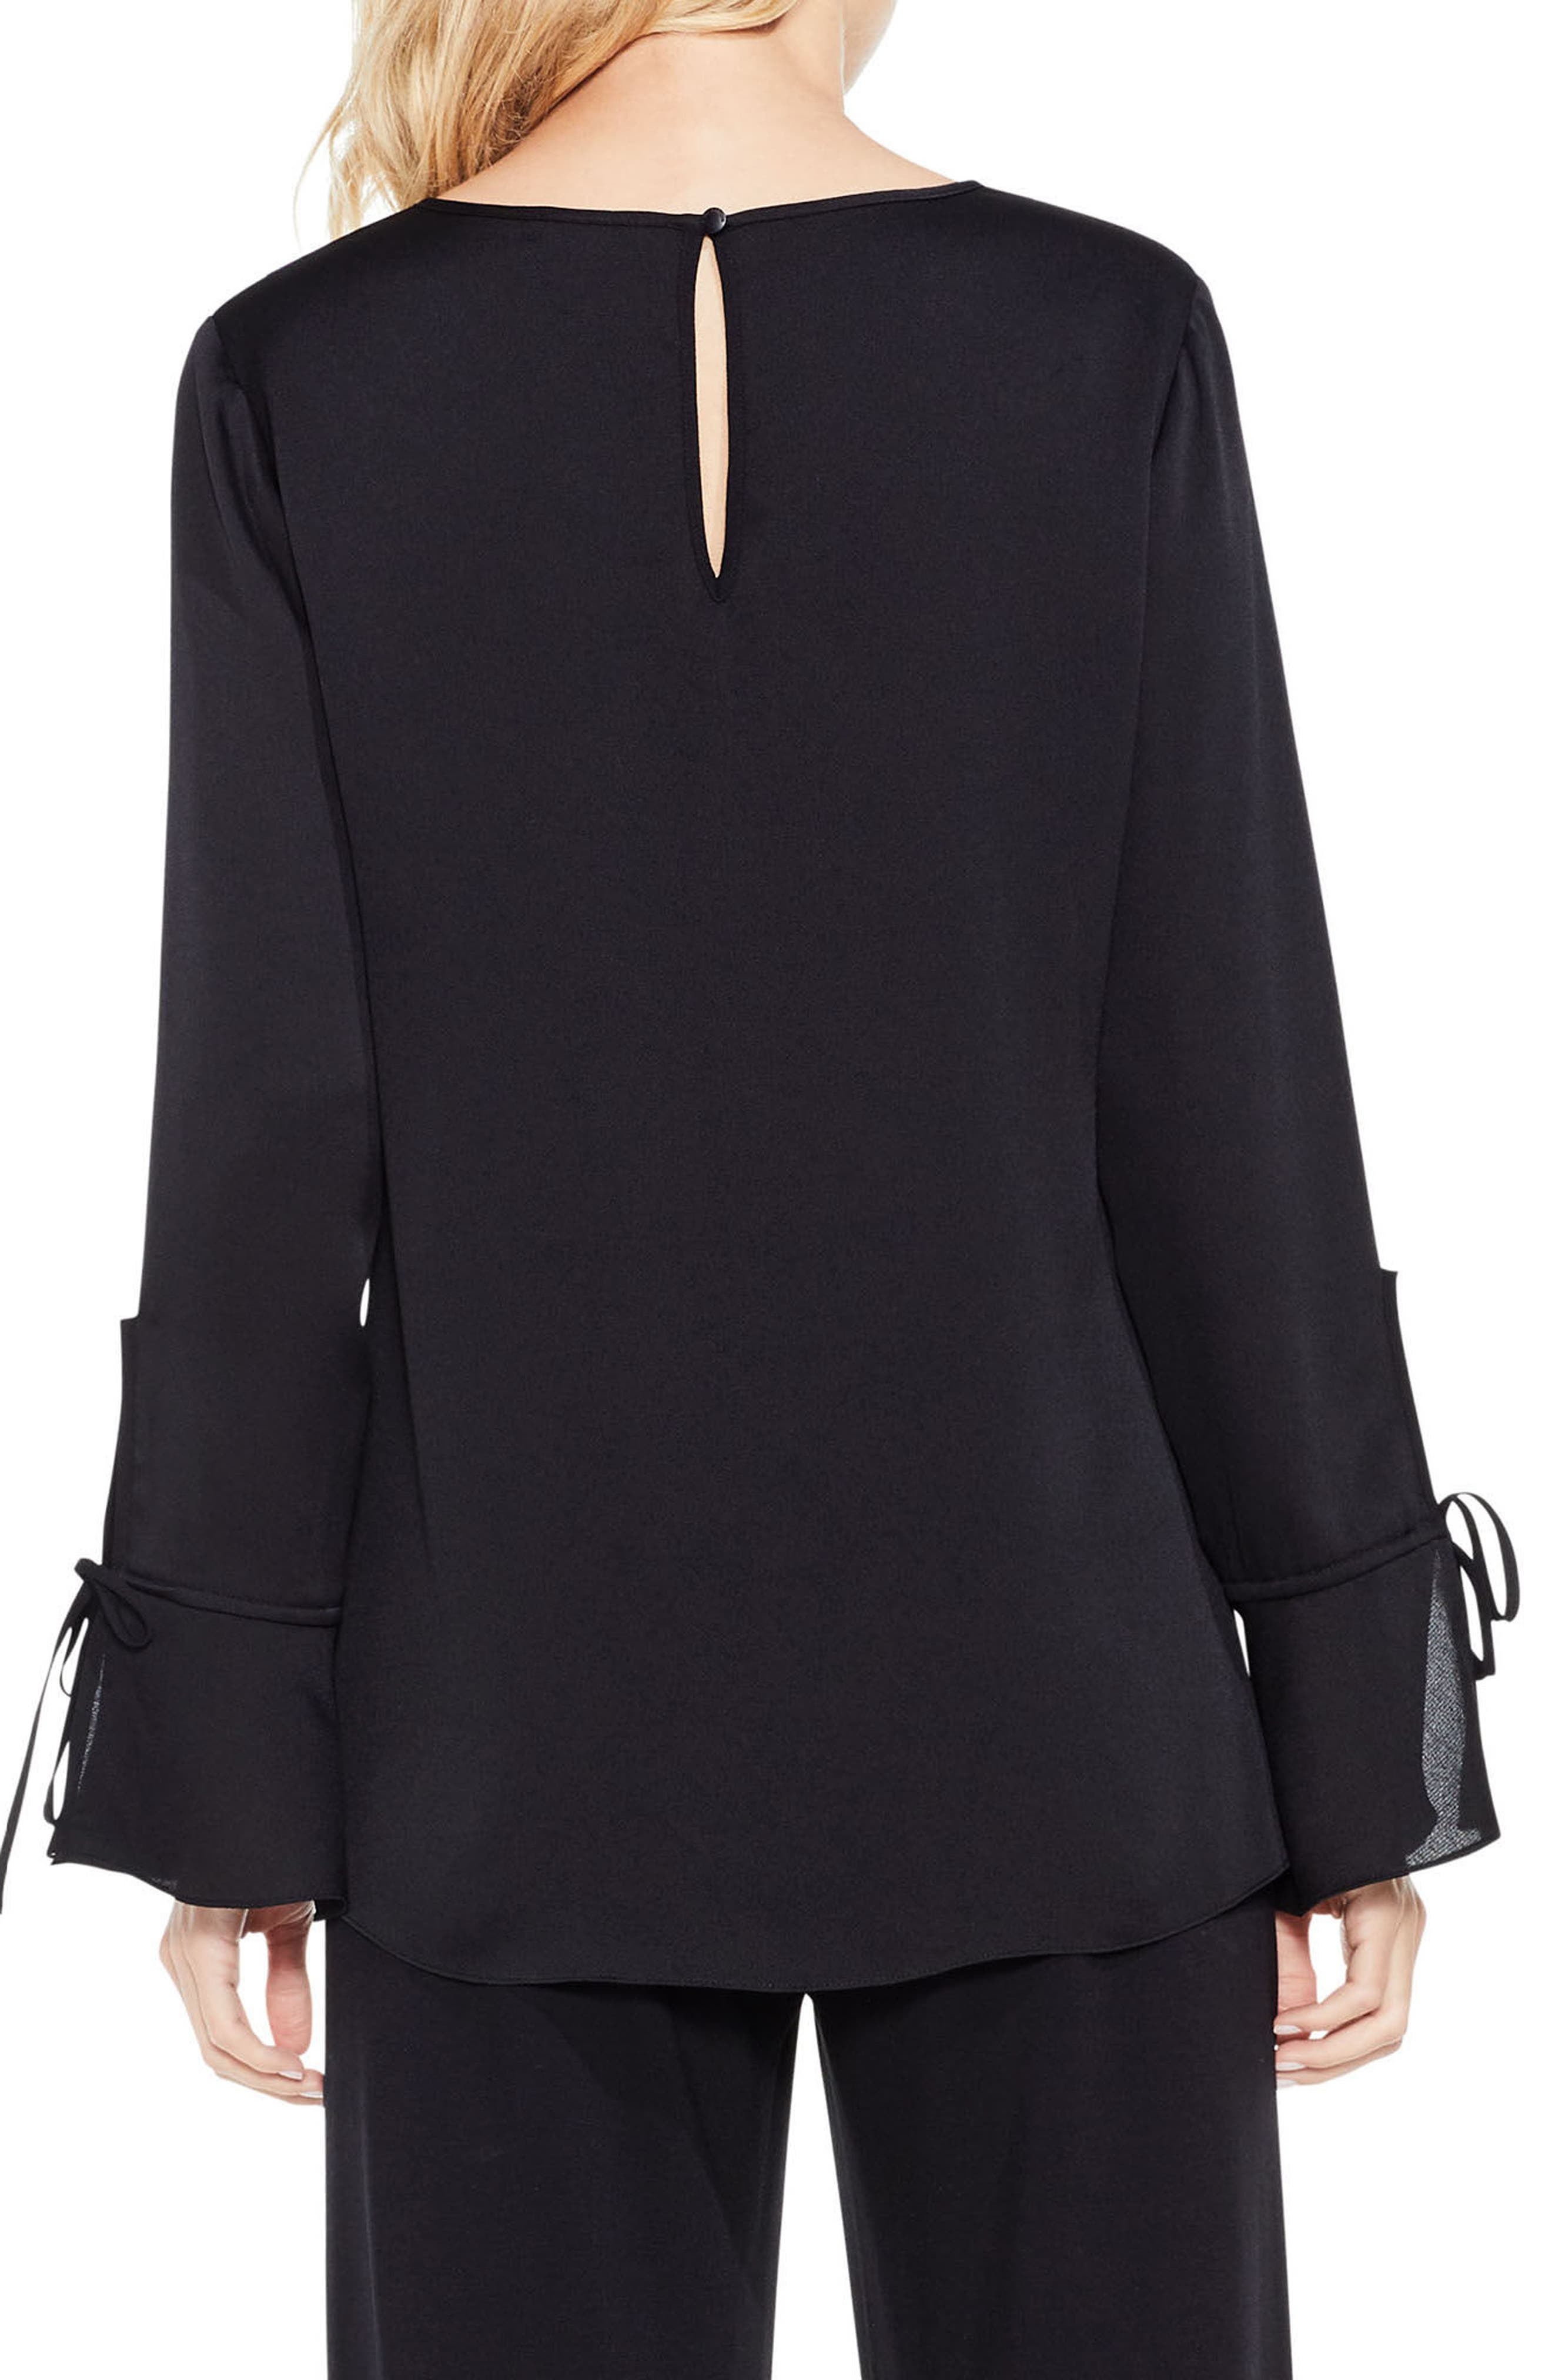 Alternate Image 2  - Vince Camuto Bell Sleeve Colorblock Top